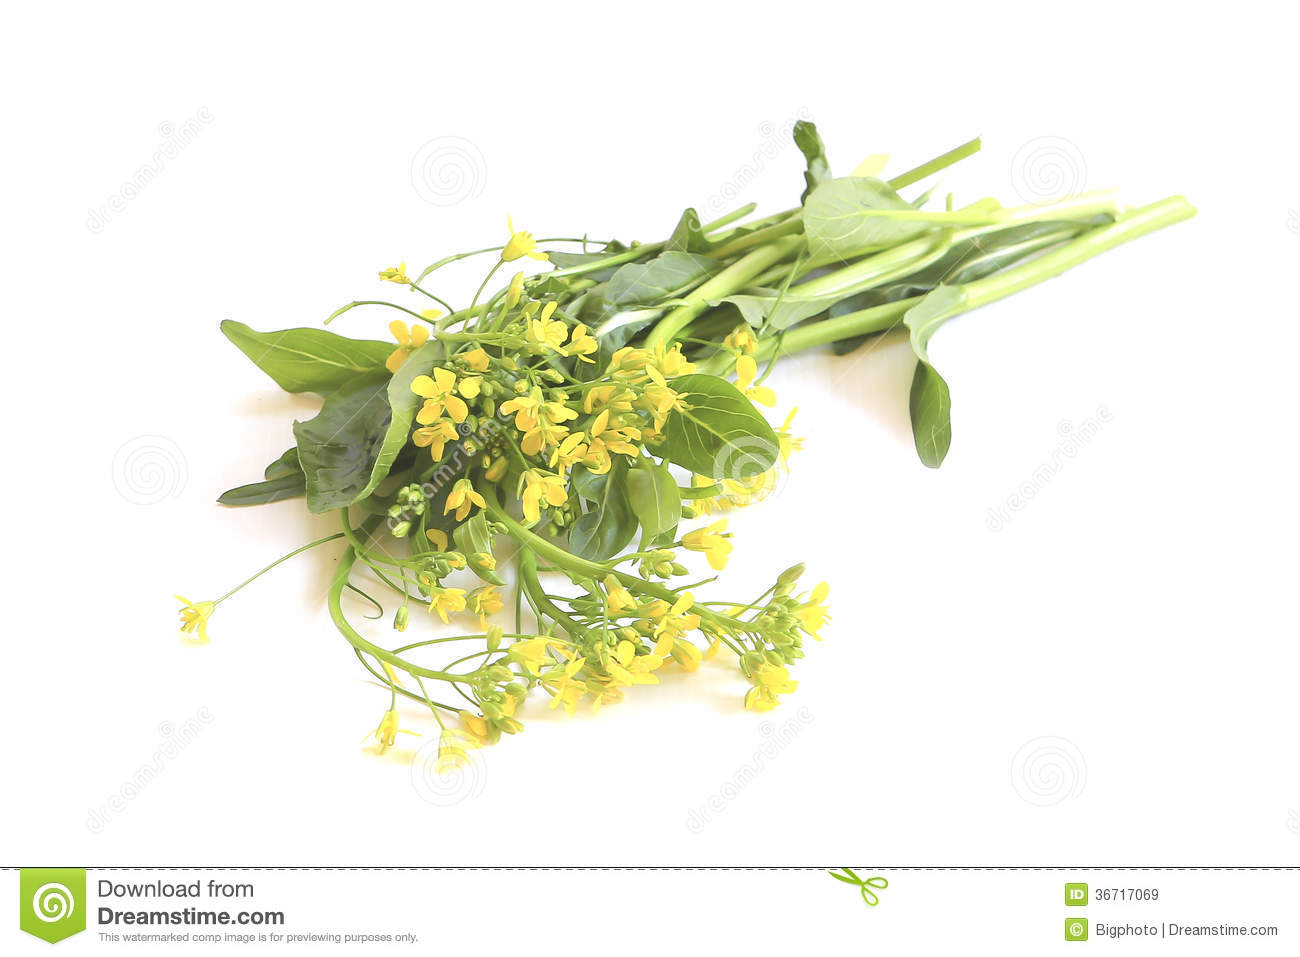 Green vegetables with yellow flowers stock image image of chinese green vegetables with yellow flowers mightylinksfo